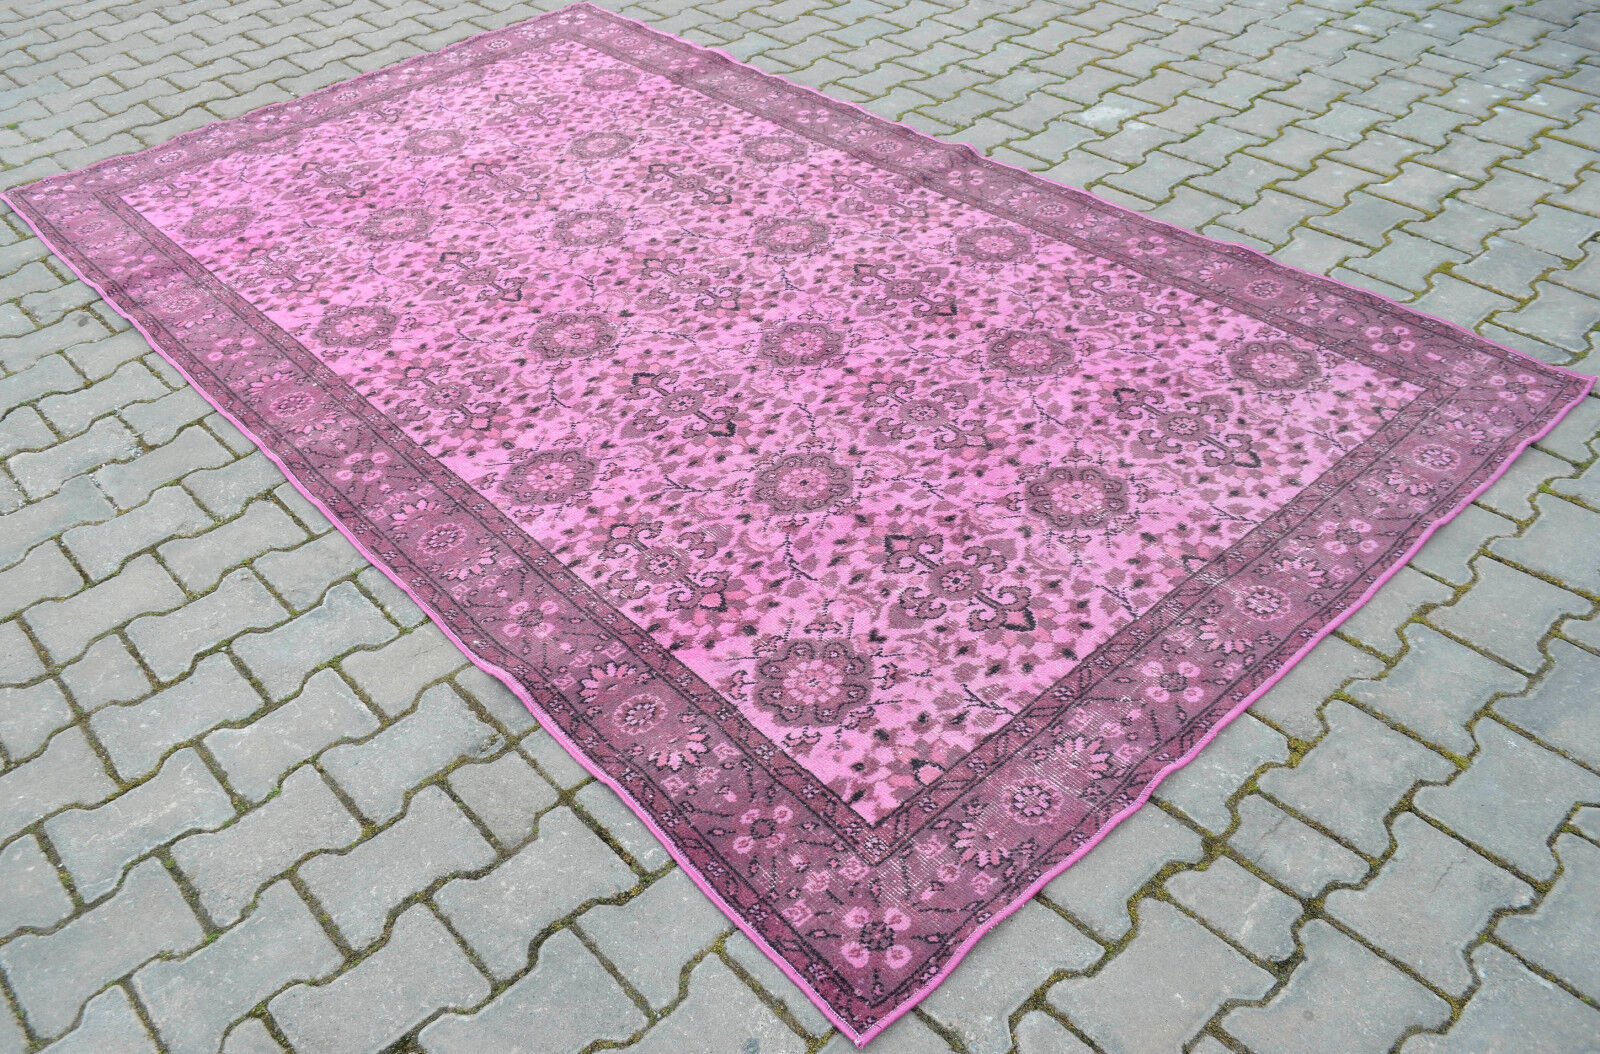 Vintage Turkish Rug Hand Woven Rosa OVERDYED Carpet Actual Actual Actual 67 x 116 inches d3bb6c